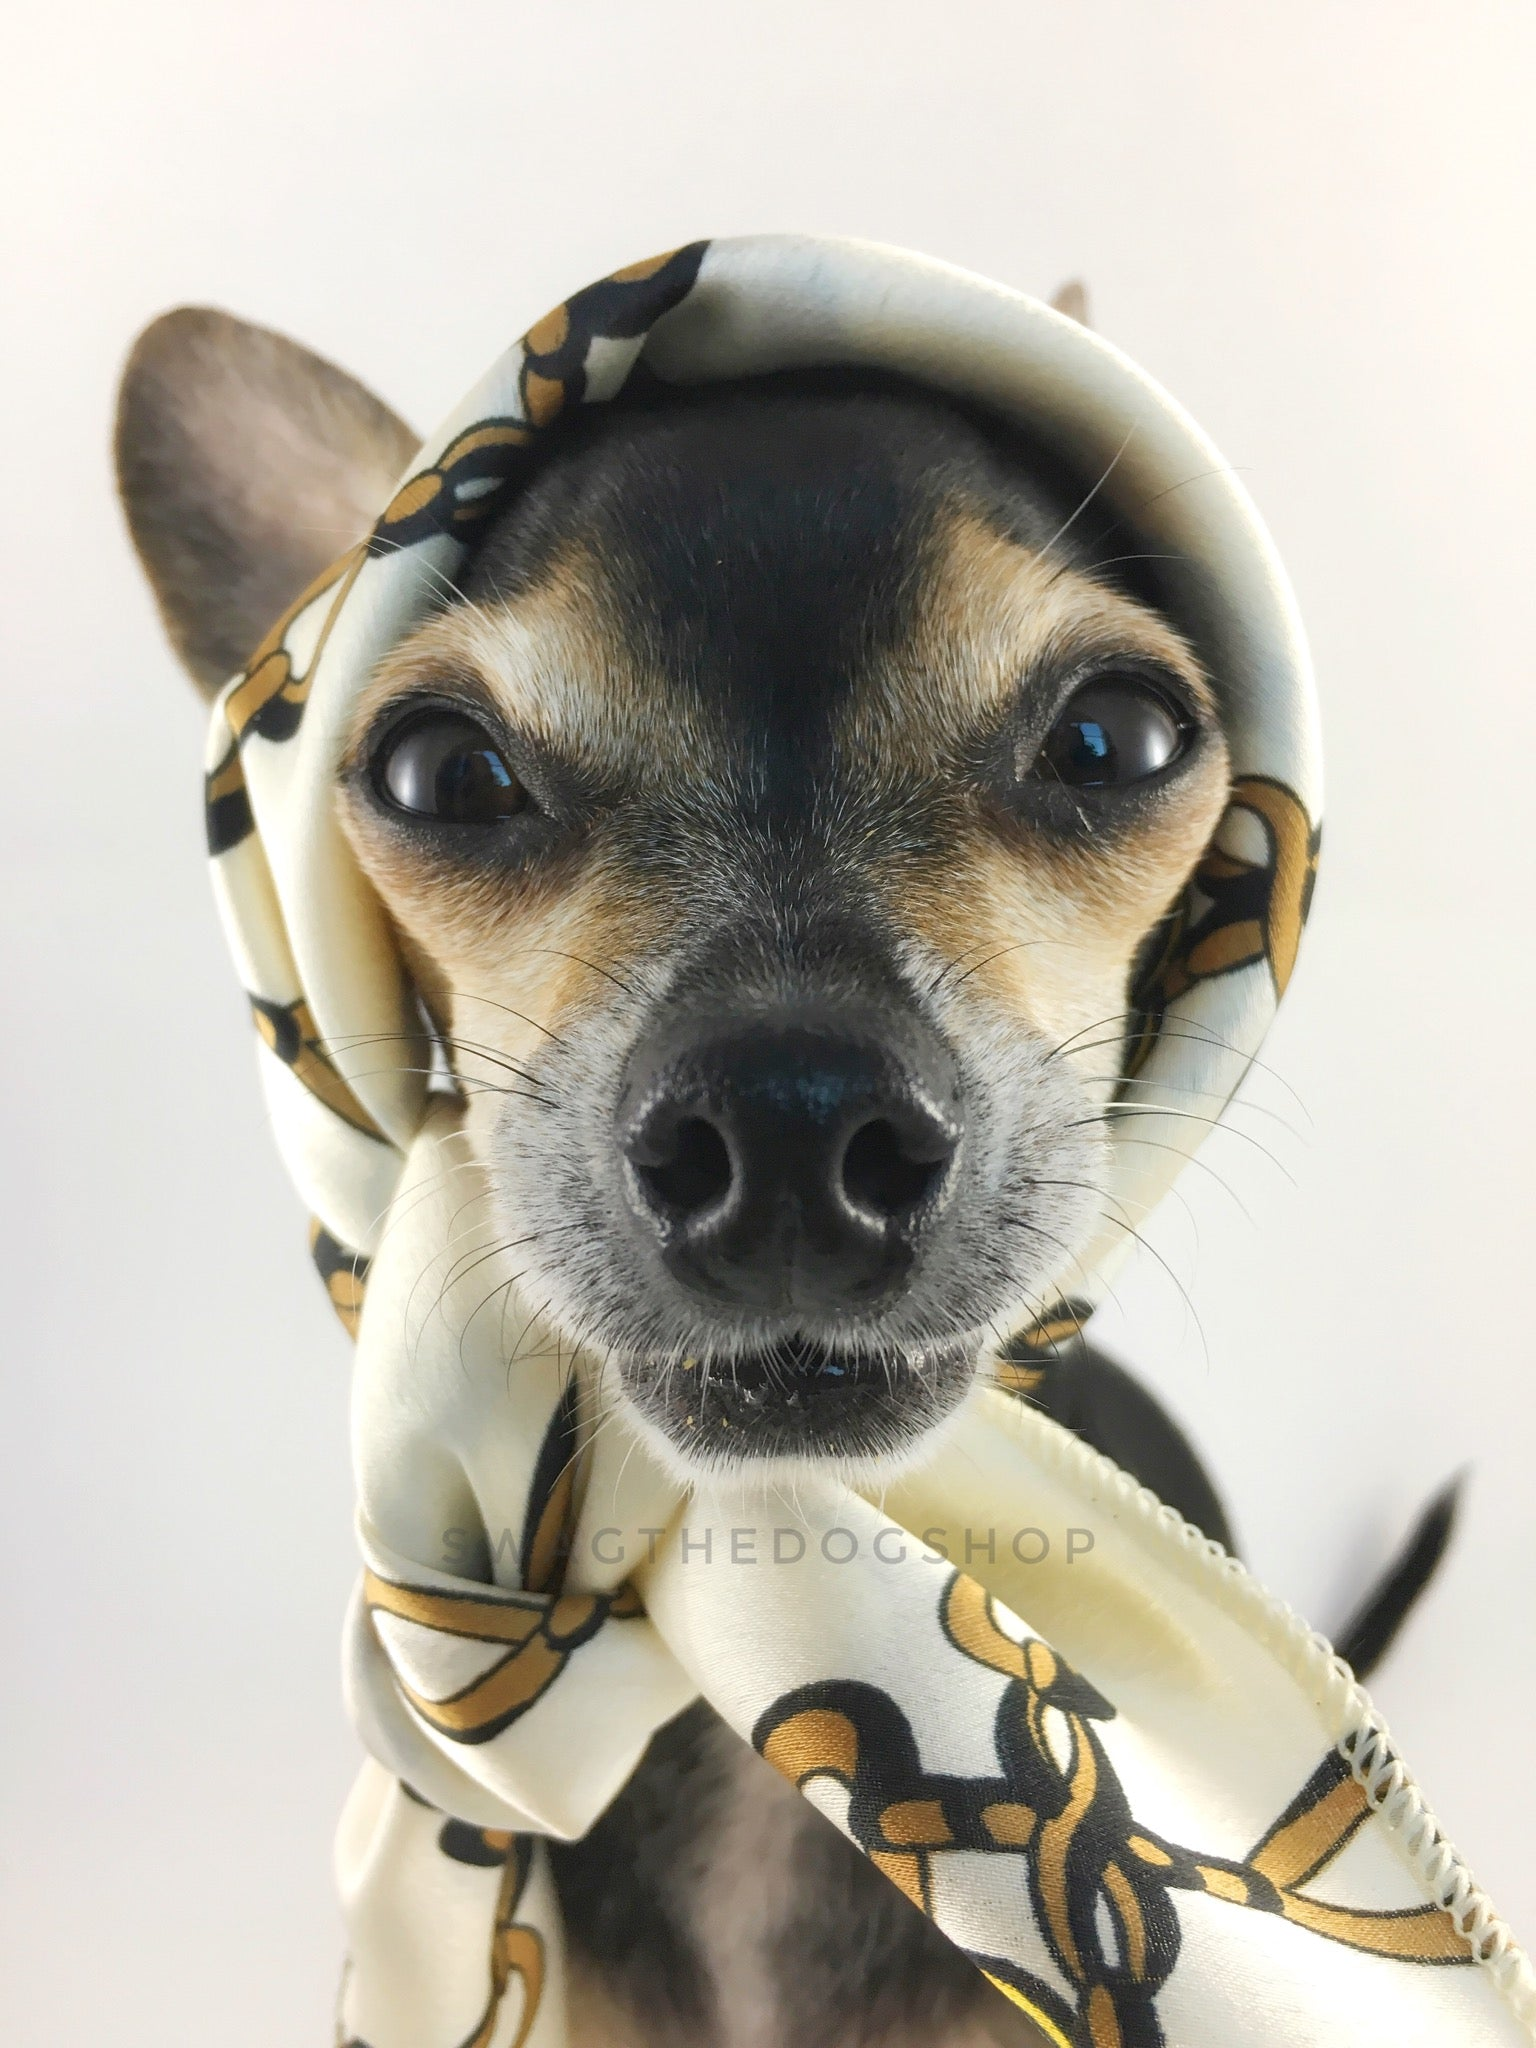 24K Vanilla Gold Swagdana Scarf - Bust of Cute Chihuahua Wearing Swagdana Scarf as Headscarf. Dog Bandana. Dog Scarf